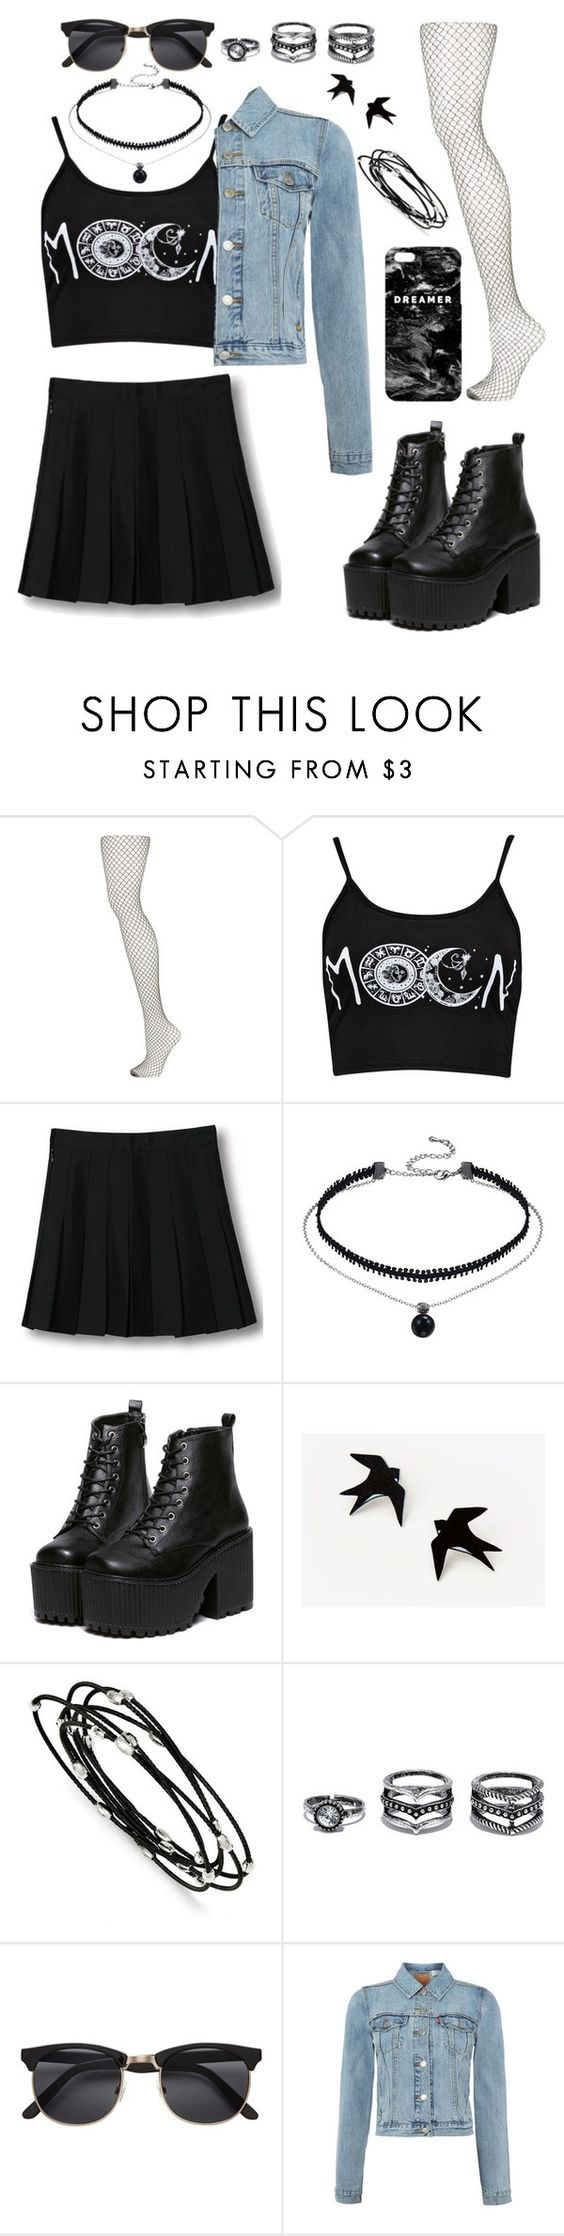 """""""Grunge"""" by shimadaryan ❤ liked on Polyvore featuring Topshop, WithChic, Kevin Jewelers, LULUS, Levi's and Mr. Gugu & Miss Go"""